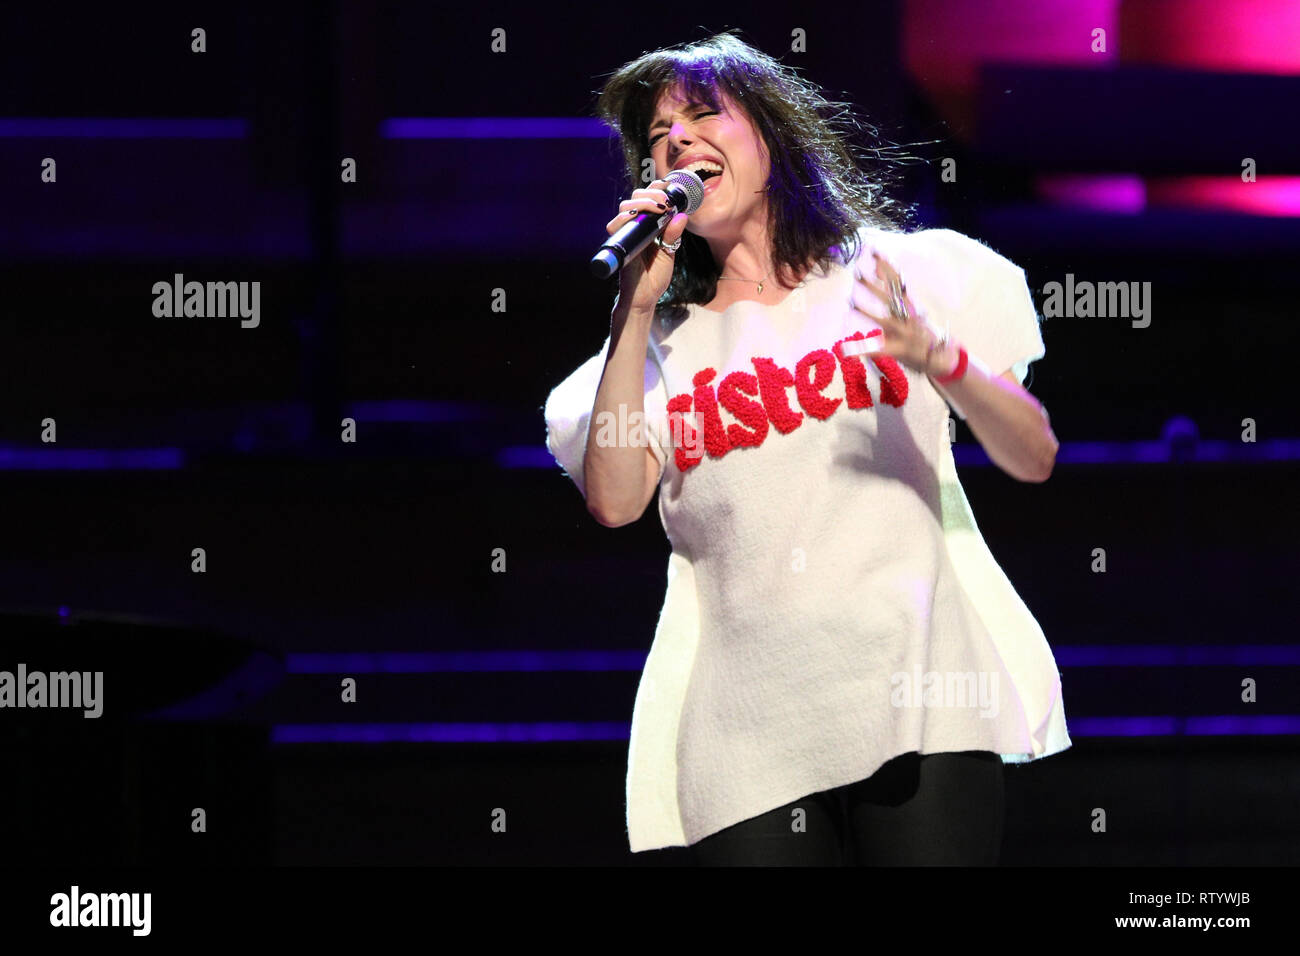 London, UK, 3rd Mar 2019. Imelda May performs. March4Women is CARE International's annual month of action for gender equality. This year's London event is held at Central Hall, rather than as an outdoor rally, and features speeches, debate and musical performances from celebrity supporters. Credit: Imageplotter/Alamy Live News Stock Photo